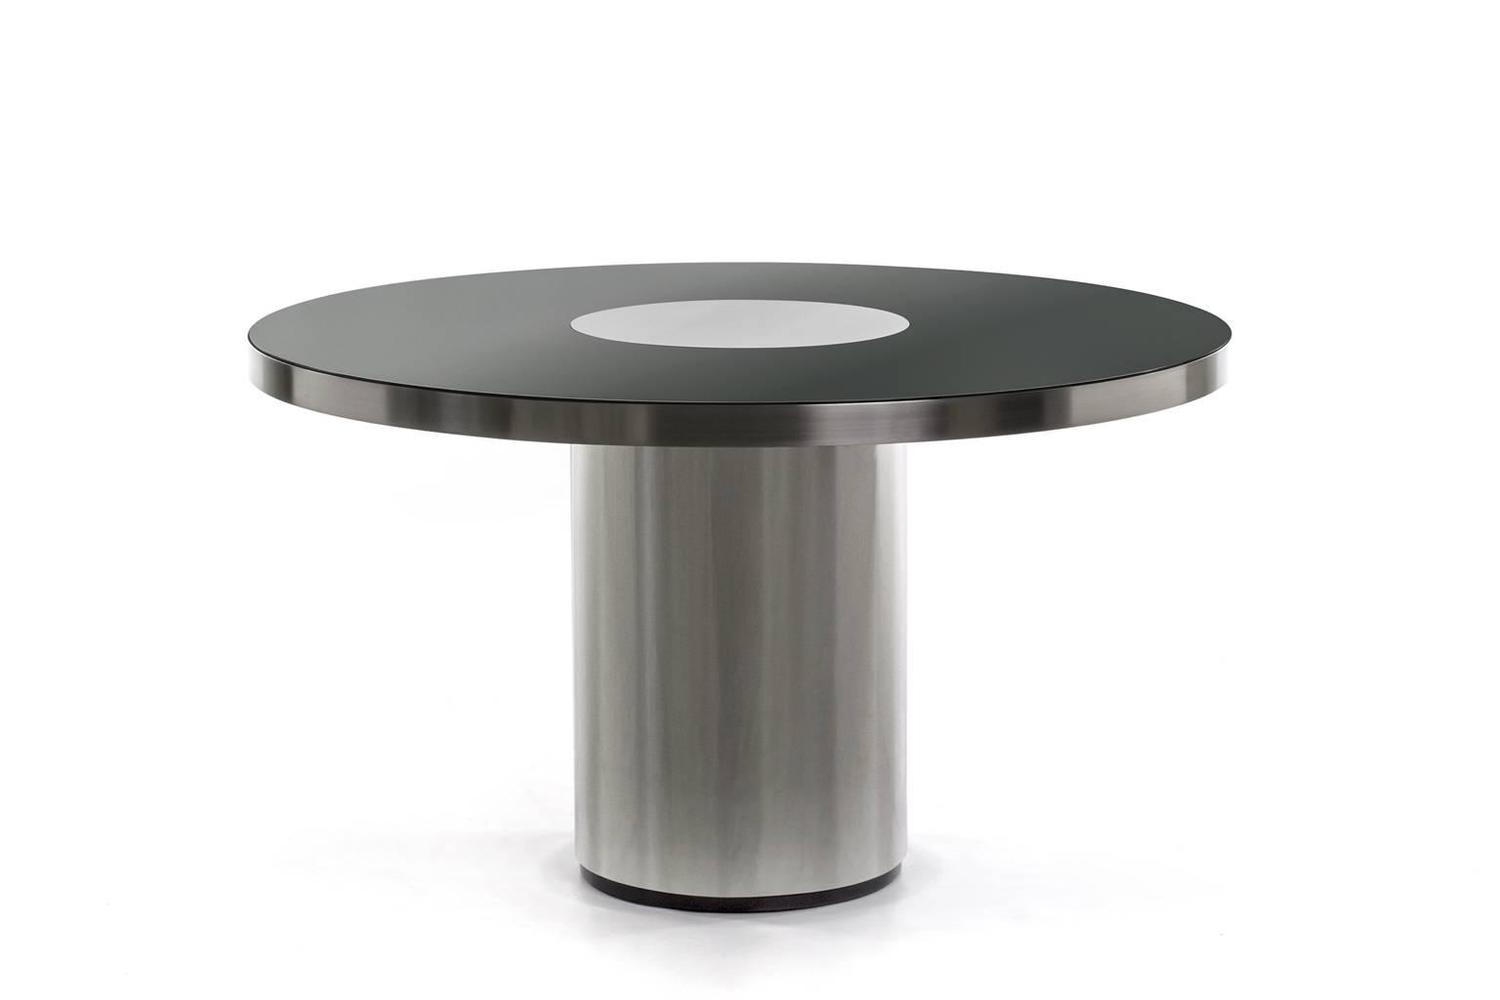 round black mirrored dining table in the style of willy rizzo for sale at 1stdibs. Black Bedroom Furniture Sets. Home Design Ideas